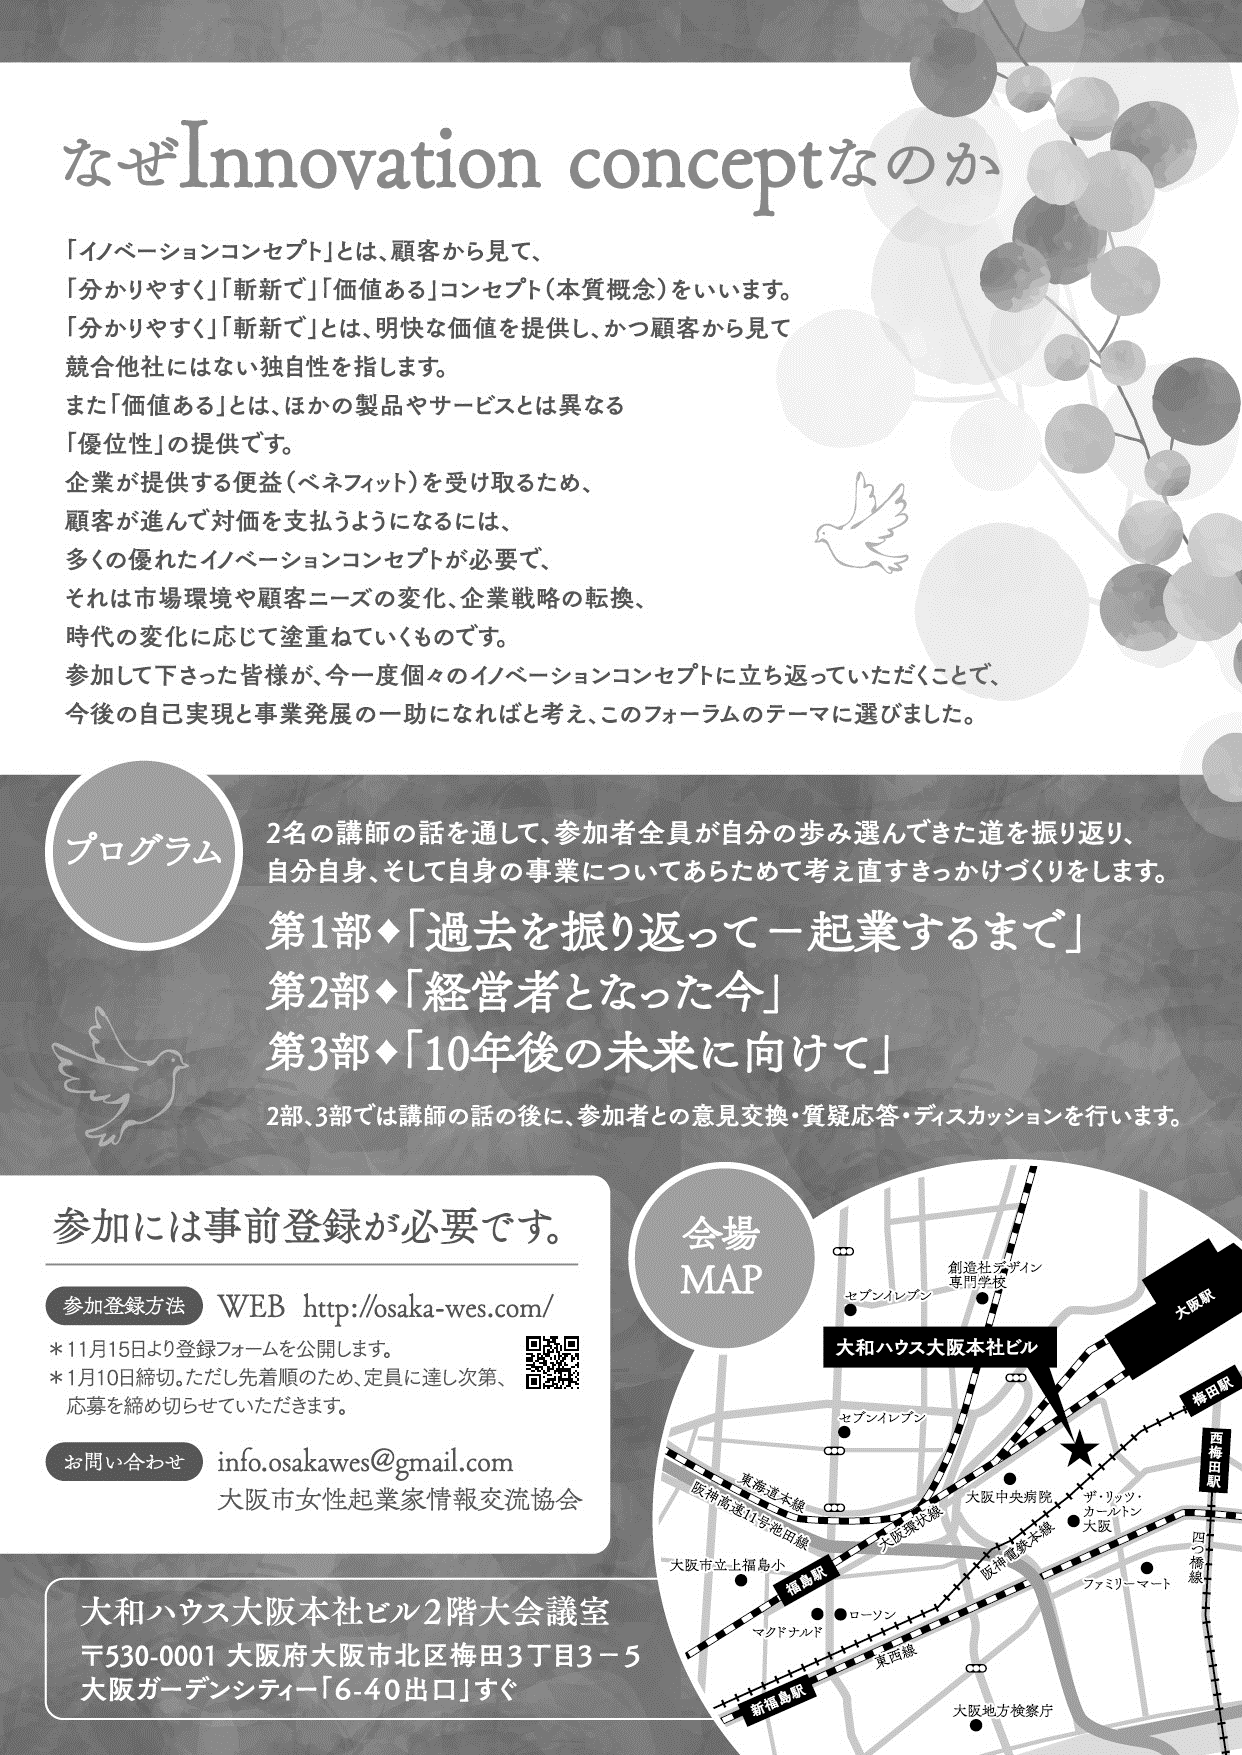 We's FORUM 2019 Innovation concept裏